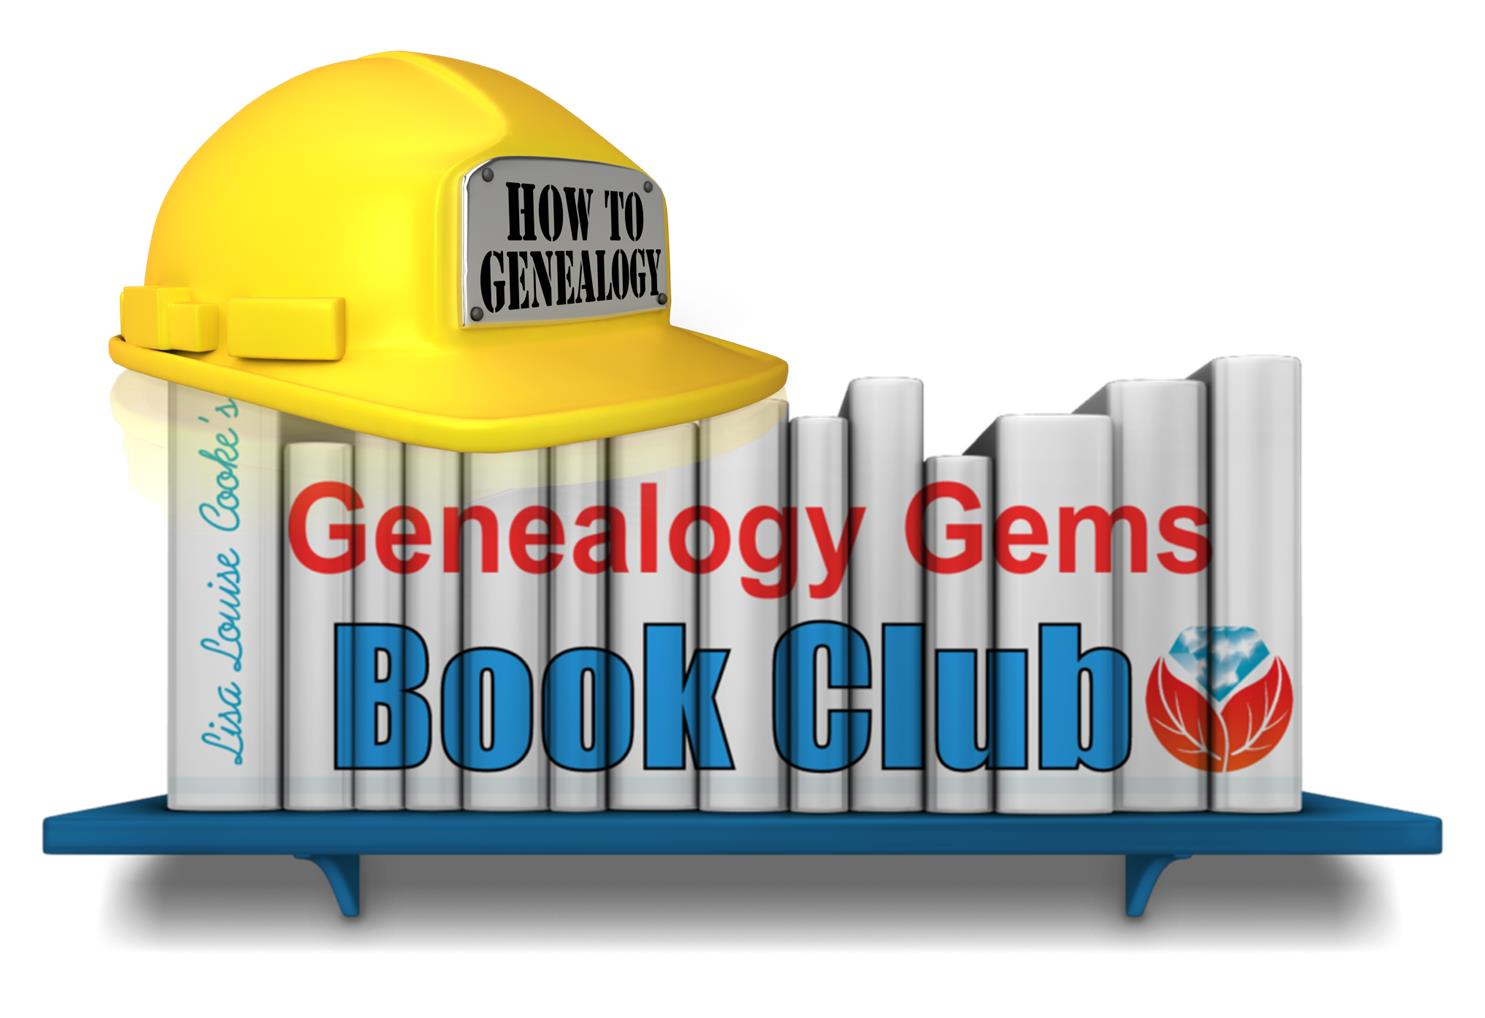 How to Genealogy LOGO